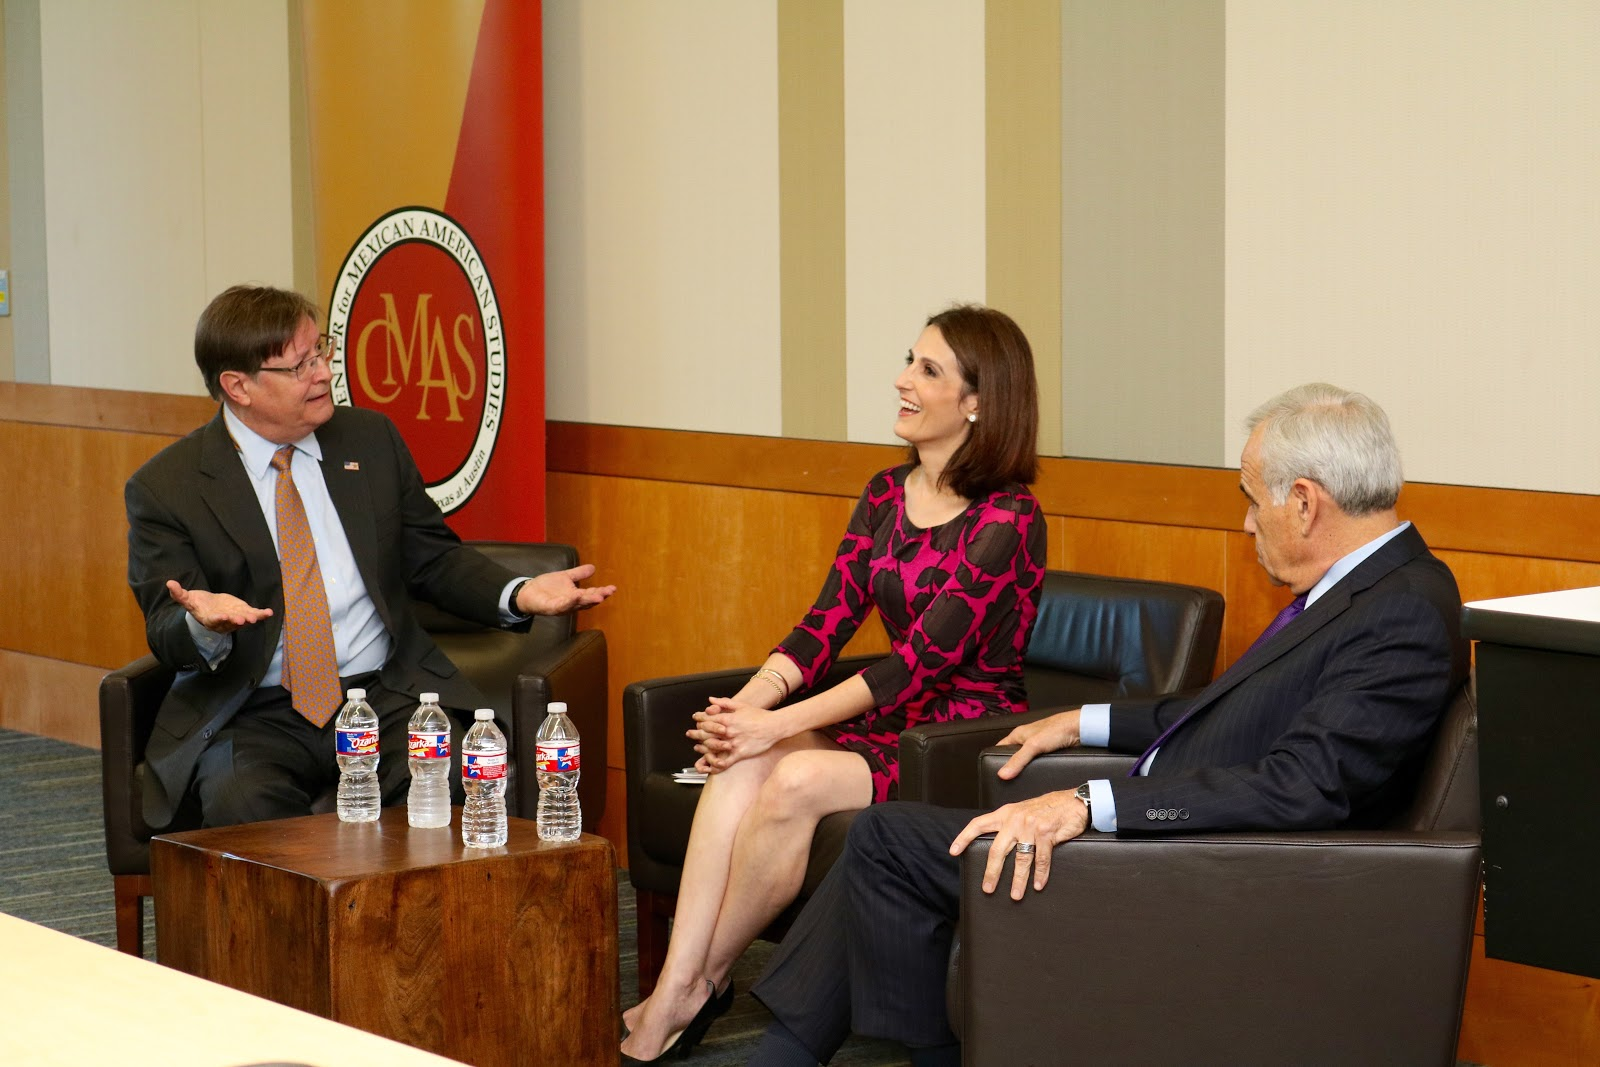 """Former U.S. congressman, Francisco """"Quico"""" Canseco (far left), political commentator for MSNBC, Victoria DeFrancesco Soto (middle) and former U.S. congressman, Charles Gonzalez (far right) discussing the Latino vote in the 2016 election."""